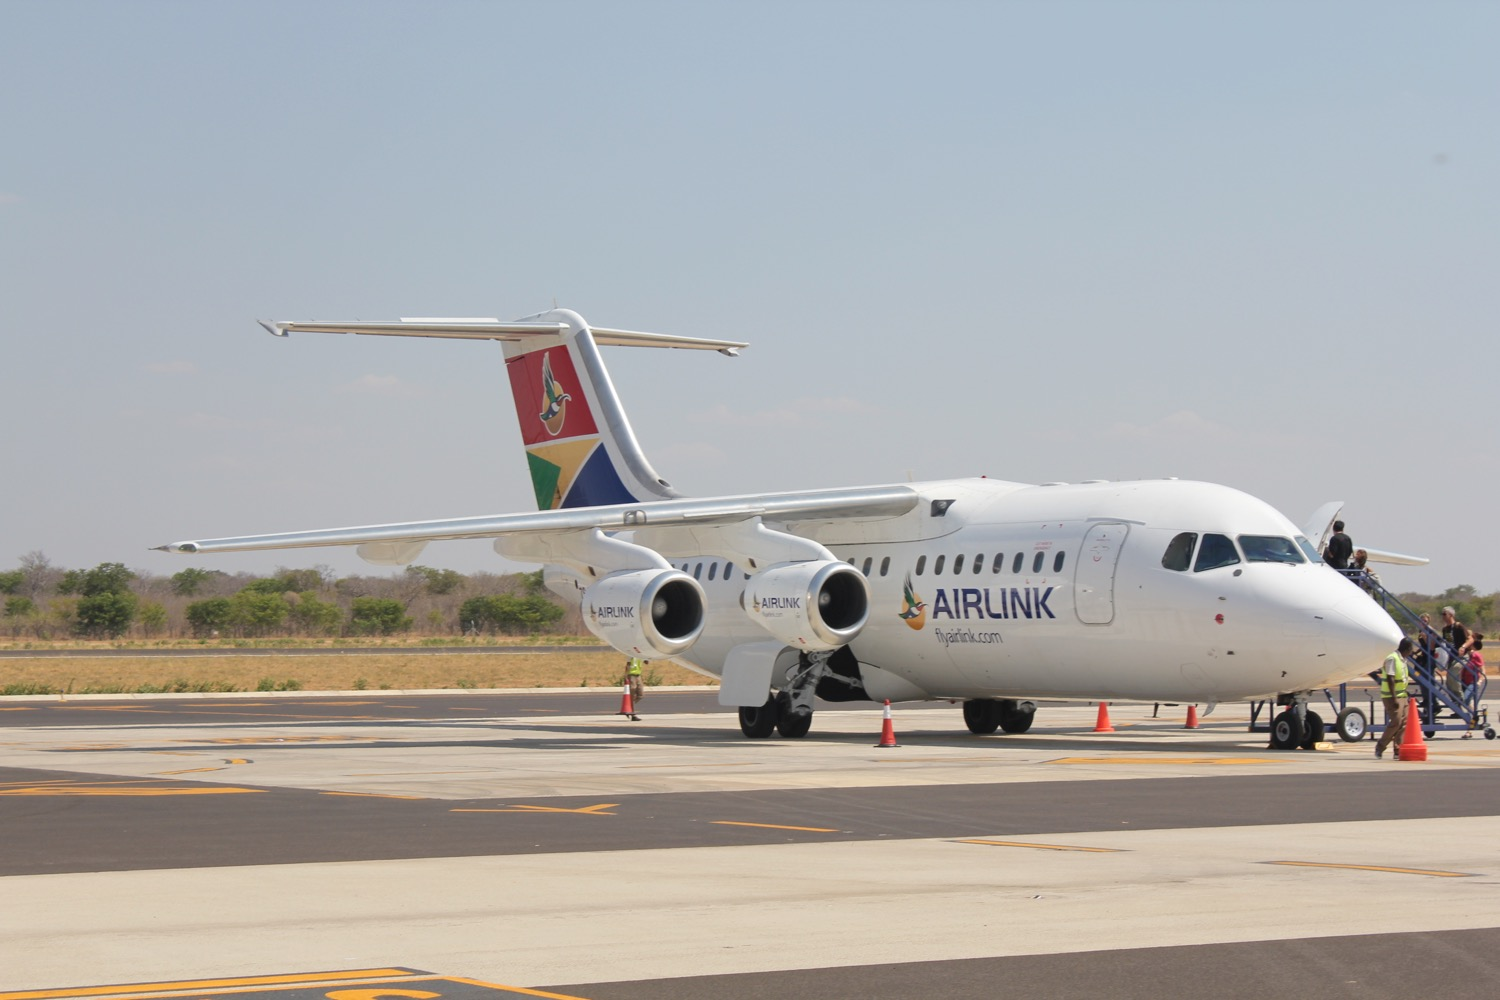 Charter Phone Service >> Cape Town to Victoria Falls Airlink takes to the skies - Bulawayo24 News